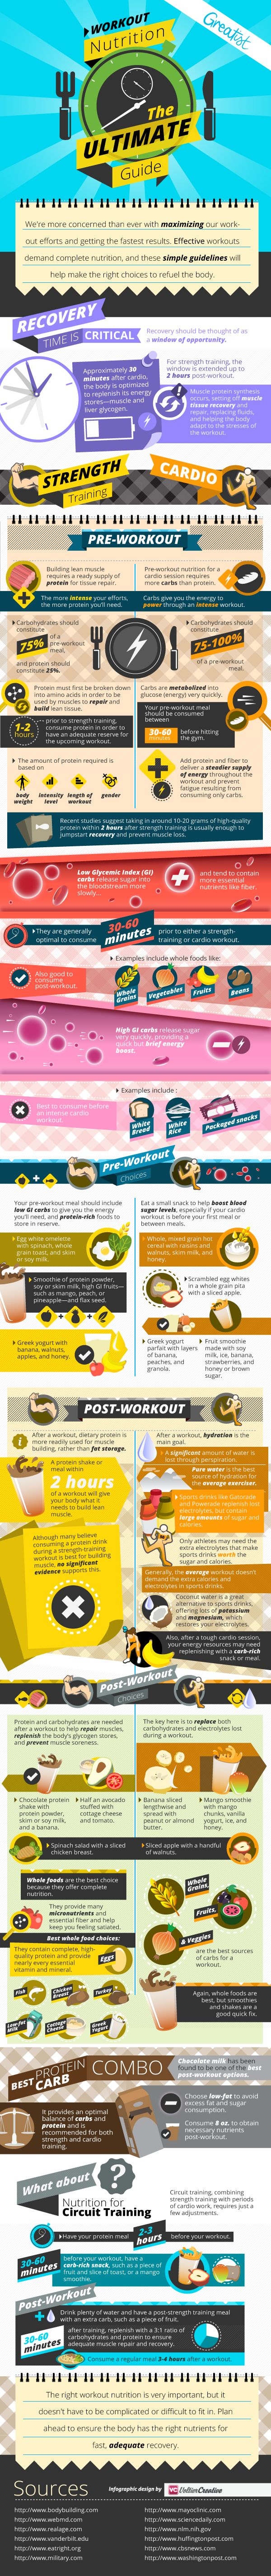 This is an awesome infographic of all things workout!